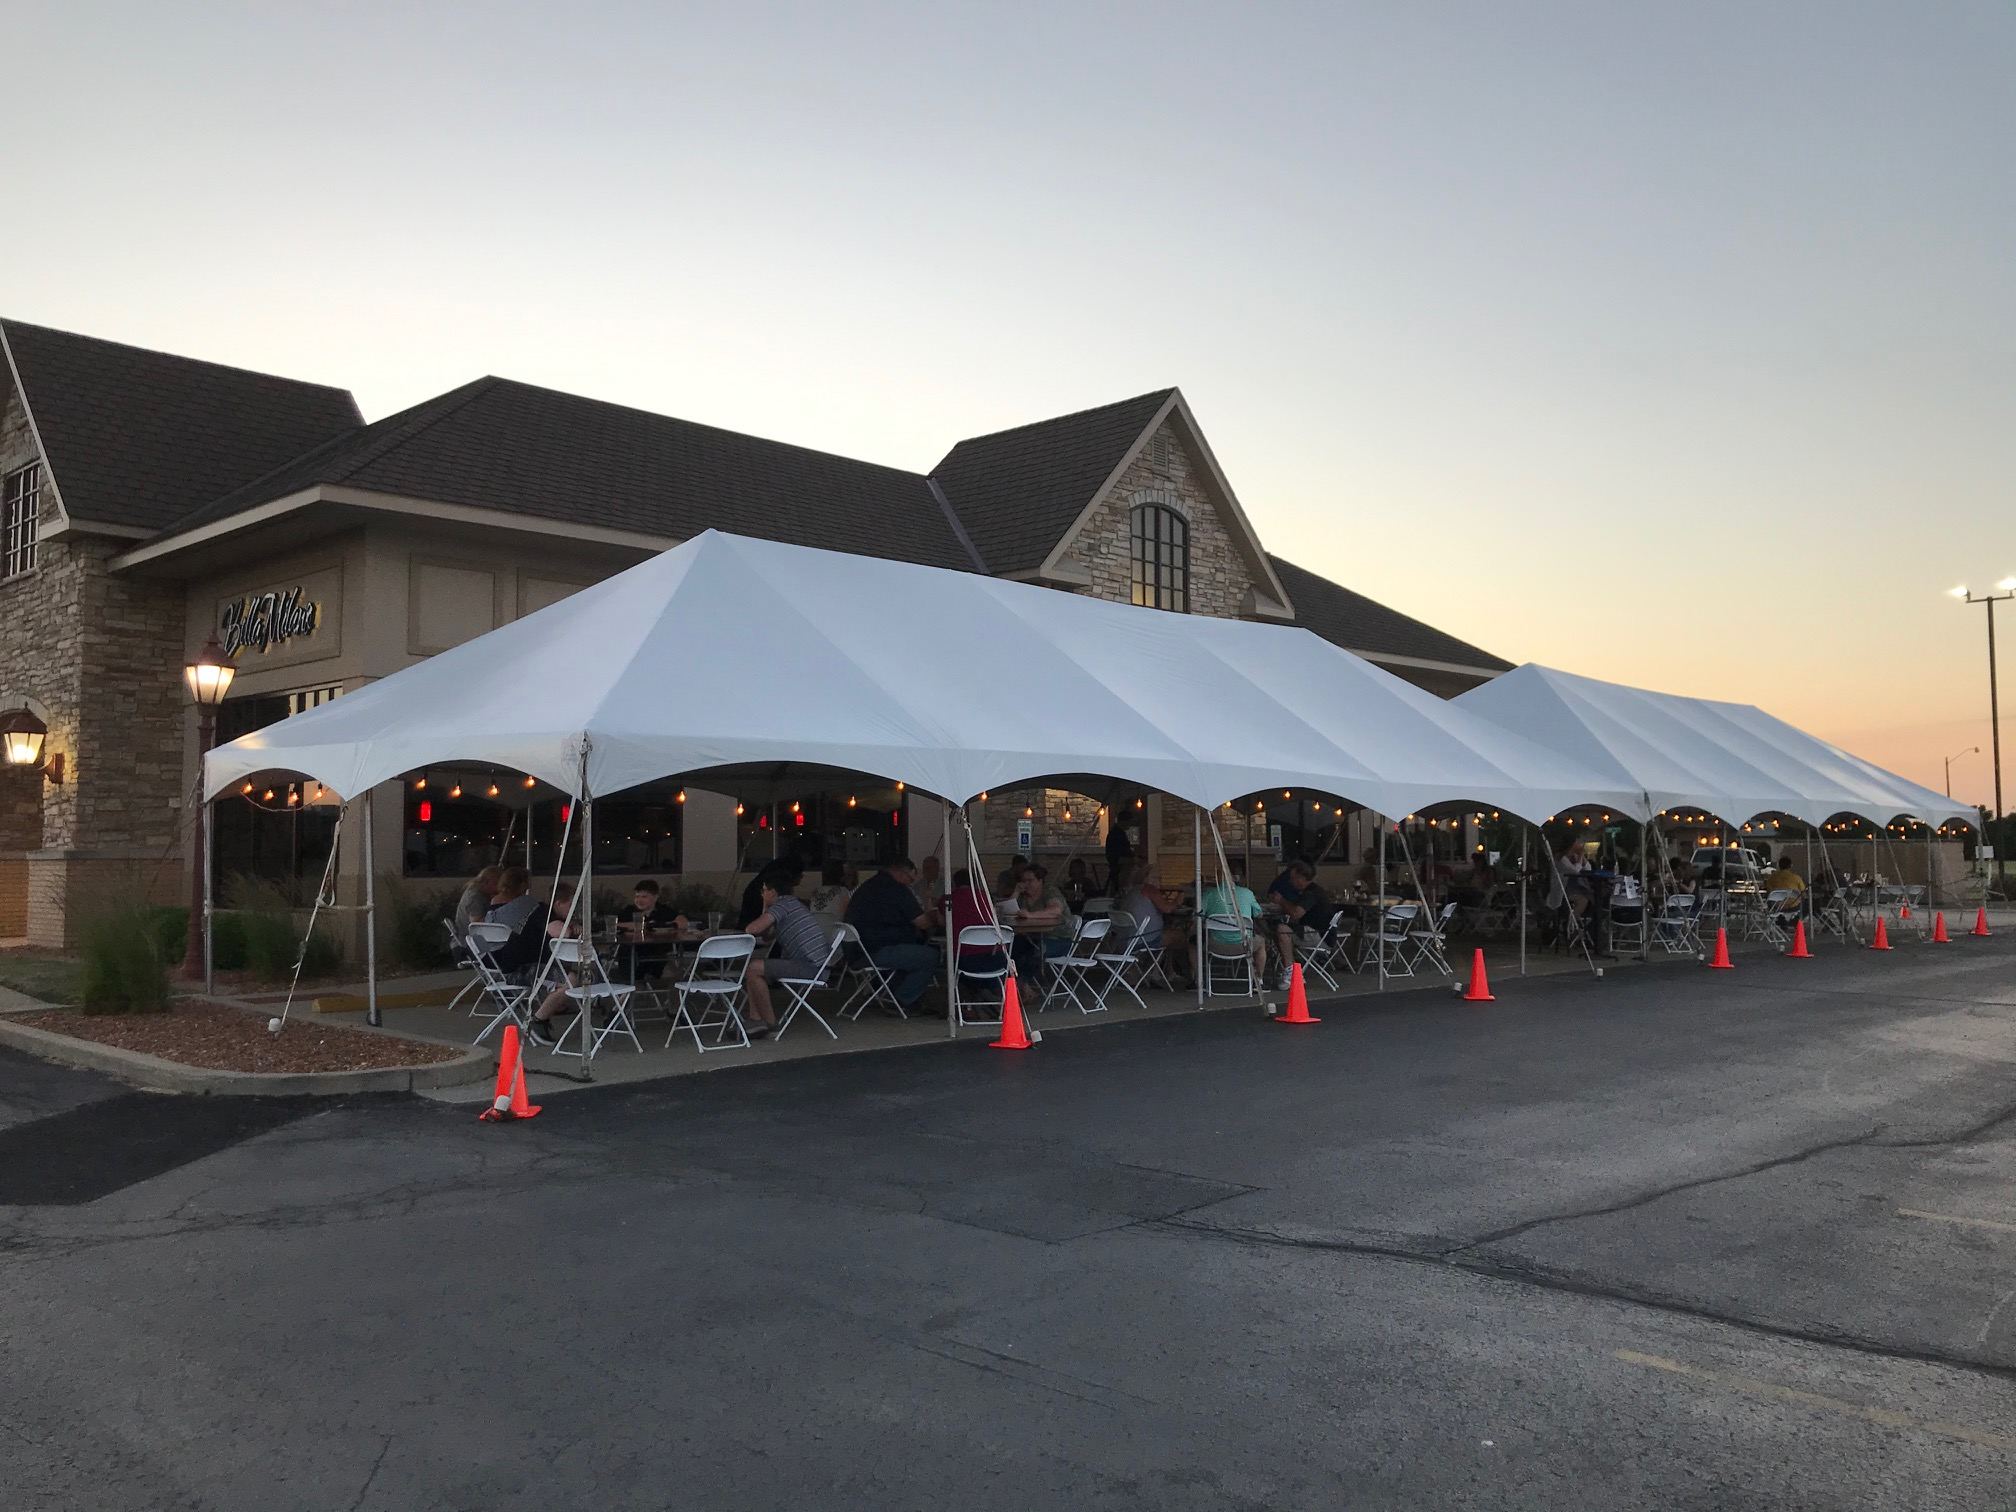 Bella Milano Celebration Frame Tent Provides Patio Dining During COVID-19. 2 tents installed for more seating.